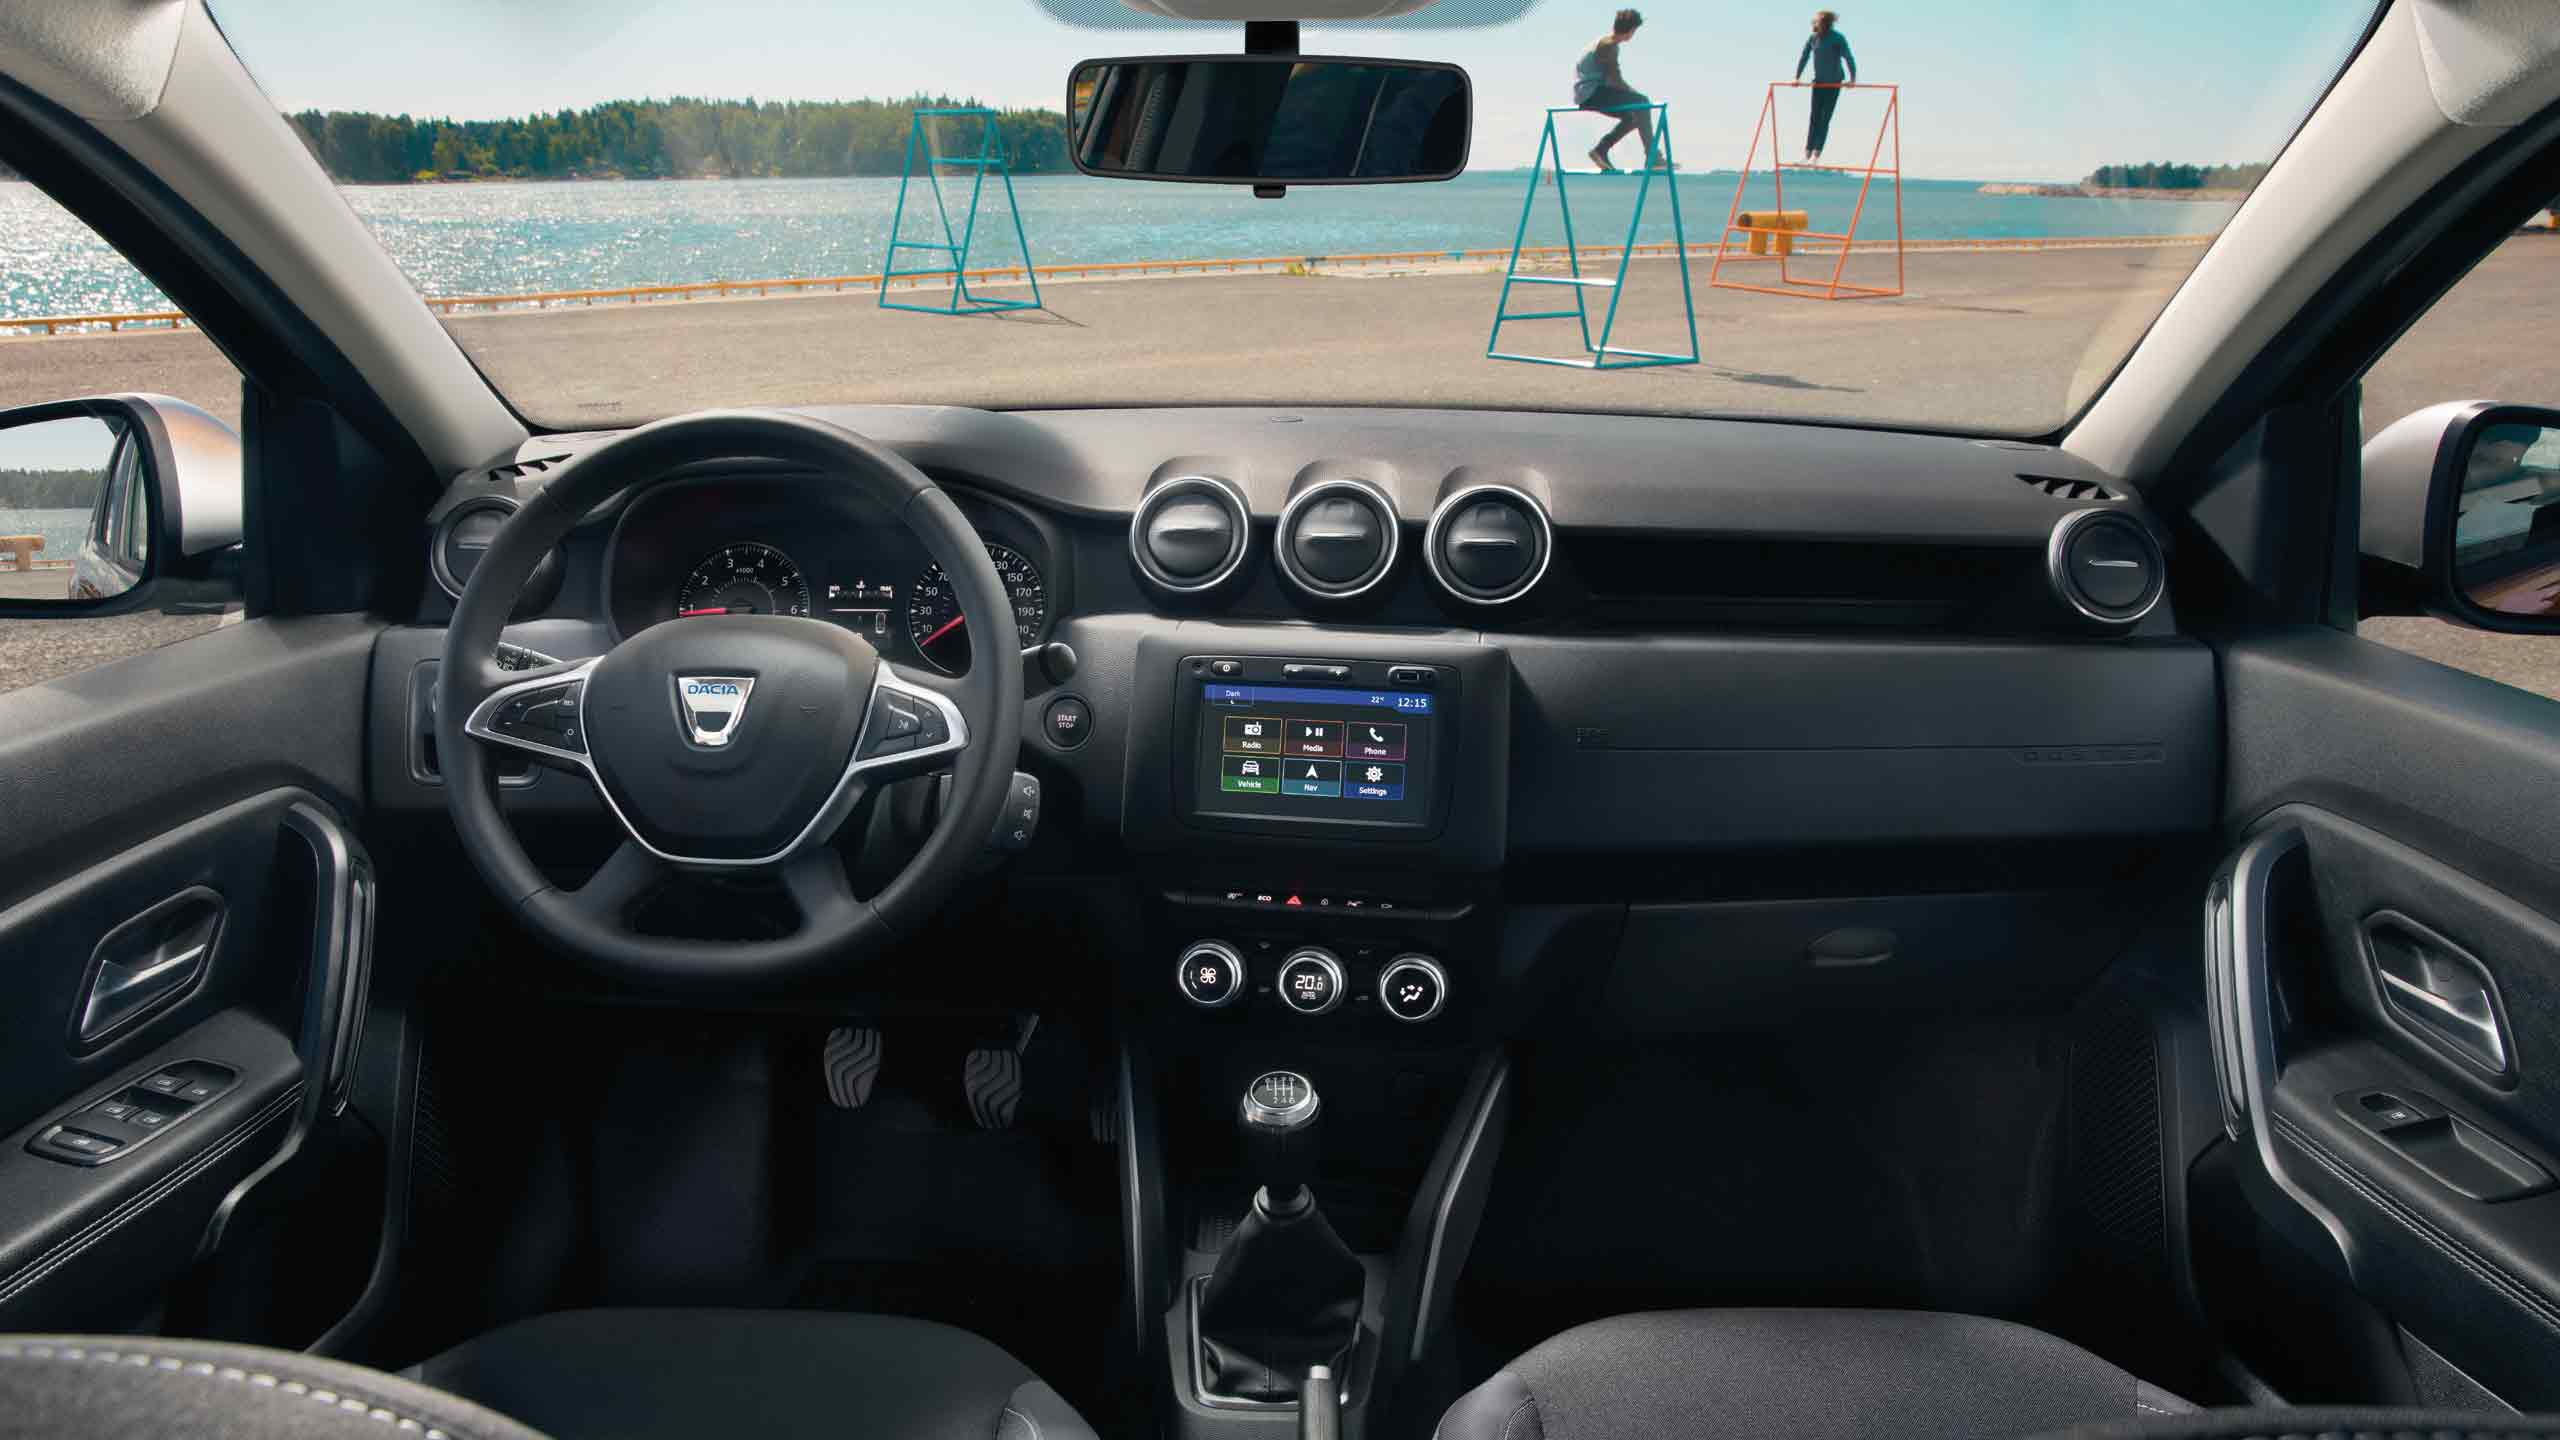 dacia-duster-hjd-ph1-interior-lifestyle-001